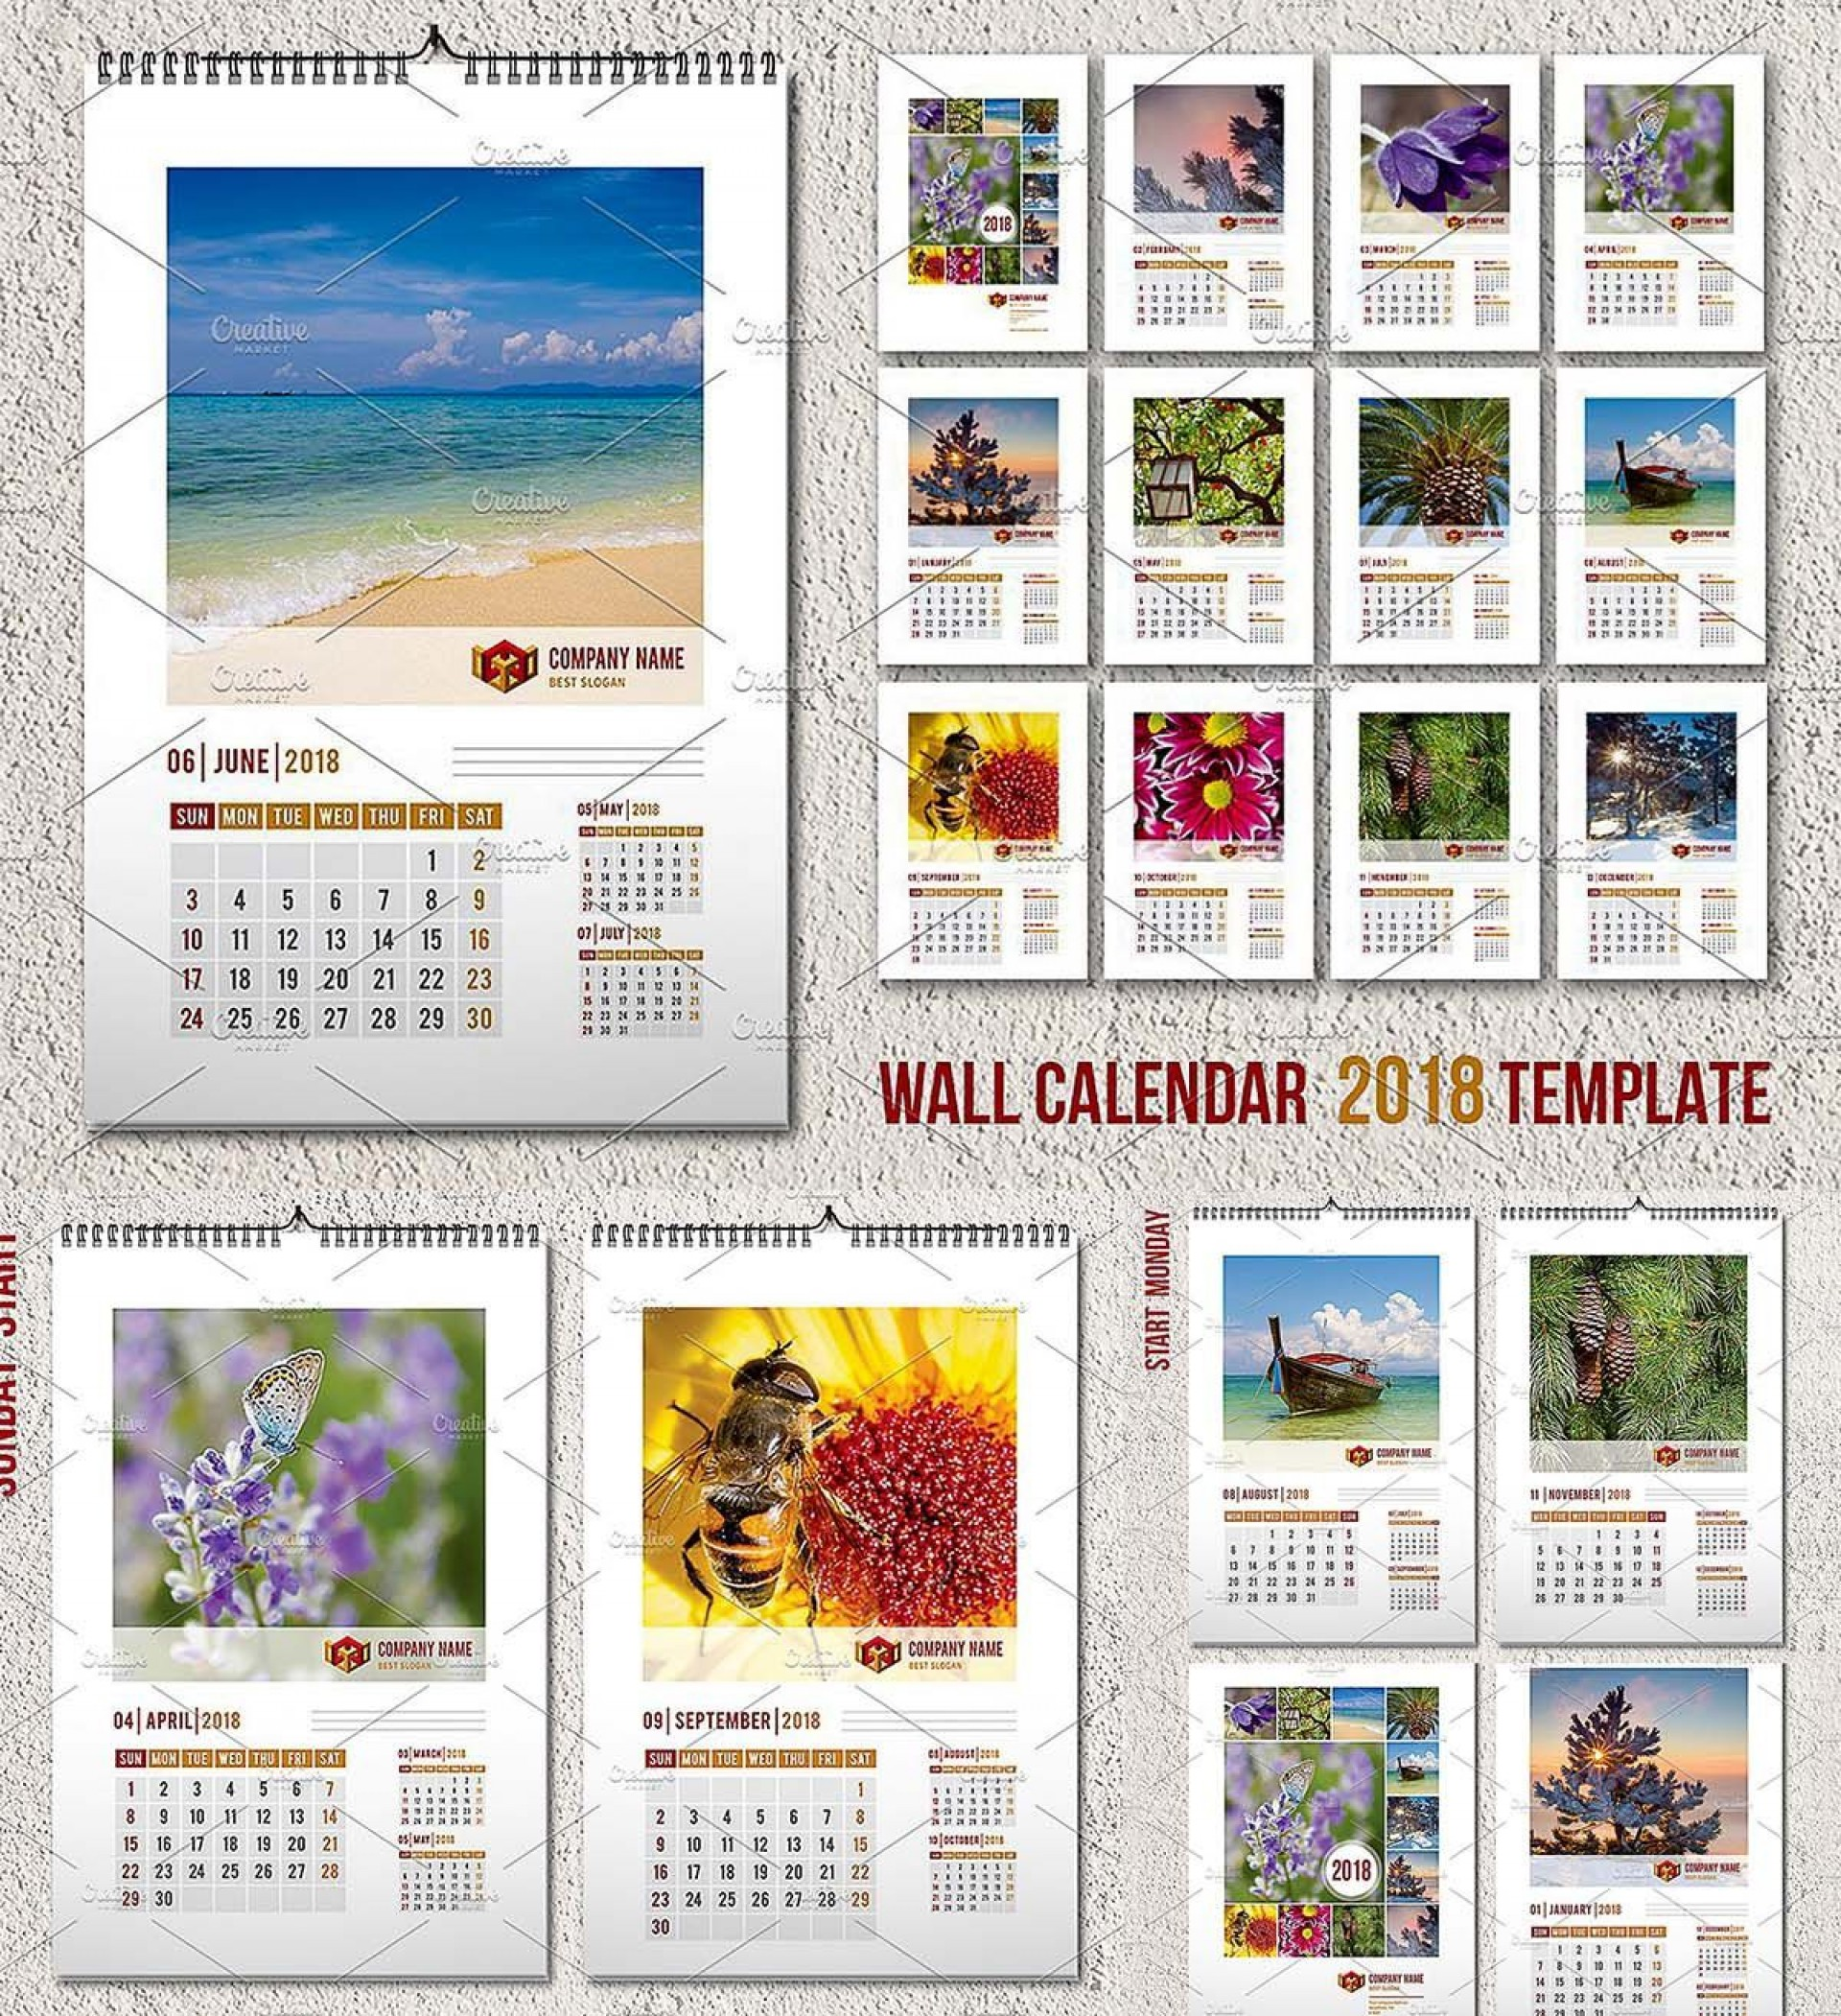 009 Stupendou Calendar Template Free Download High Def  2020 Powerpoint Table Design 2019 Malaysia1920